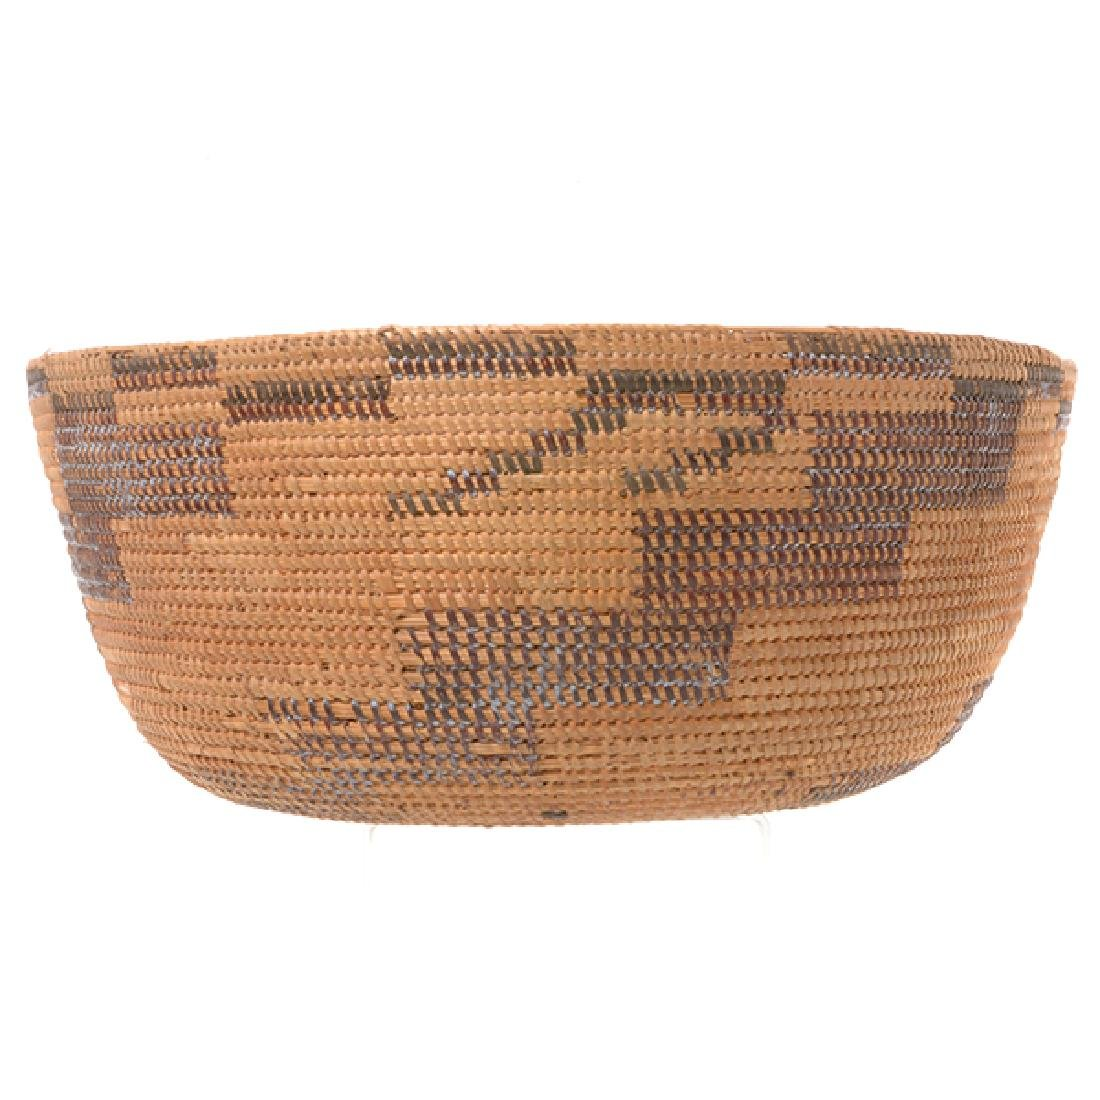 Three Native American Hand Woven Baskets - 3